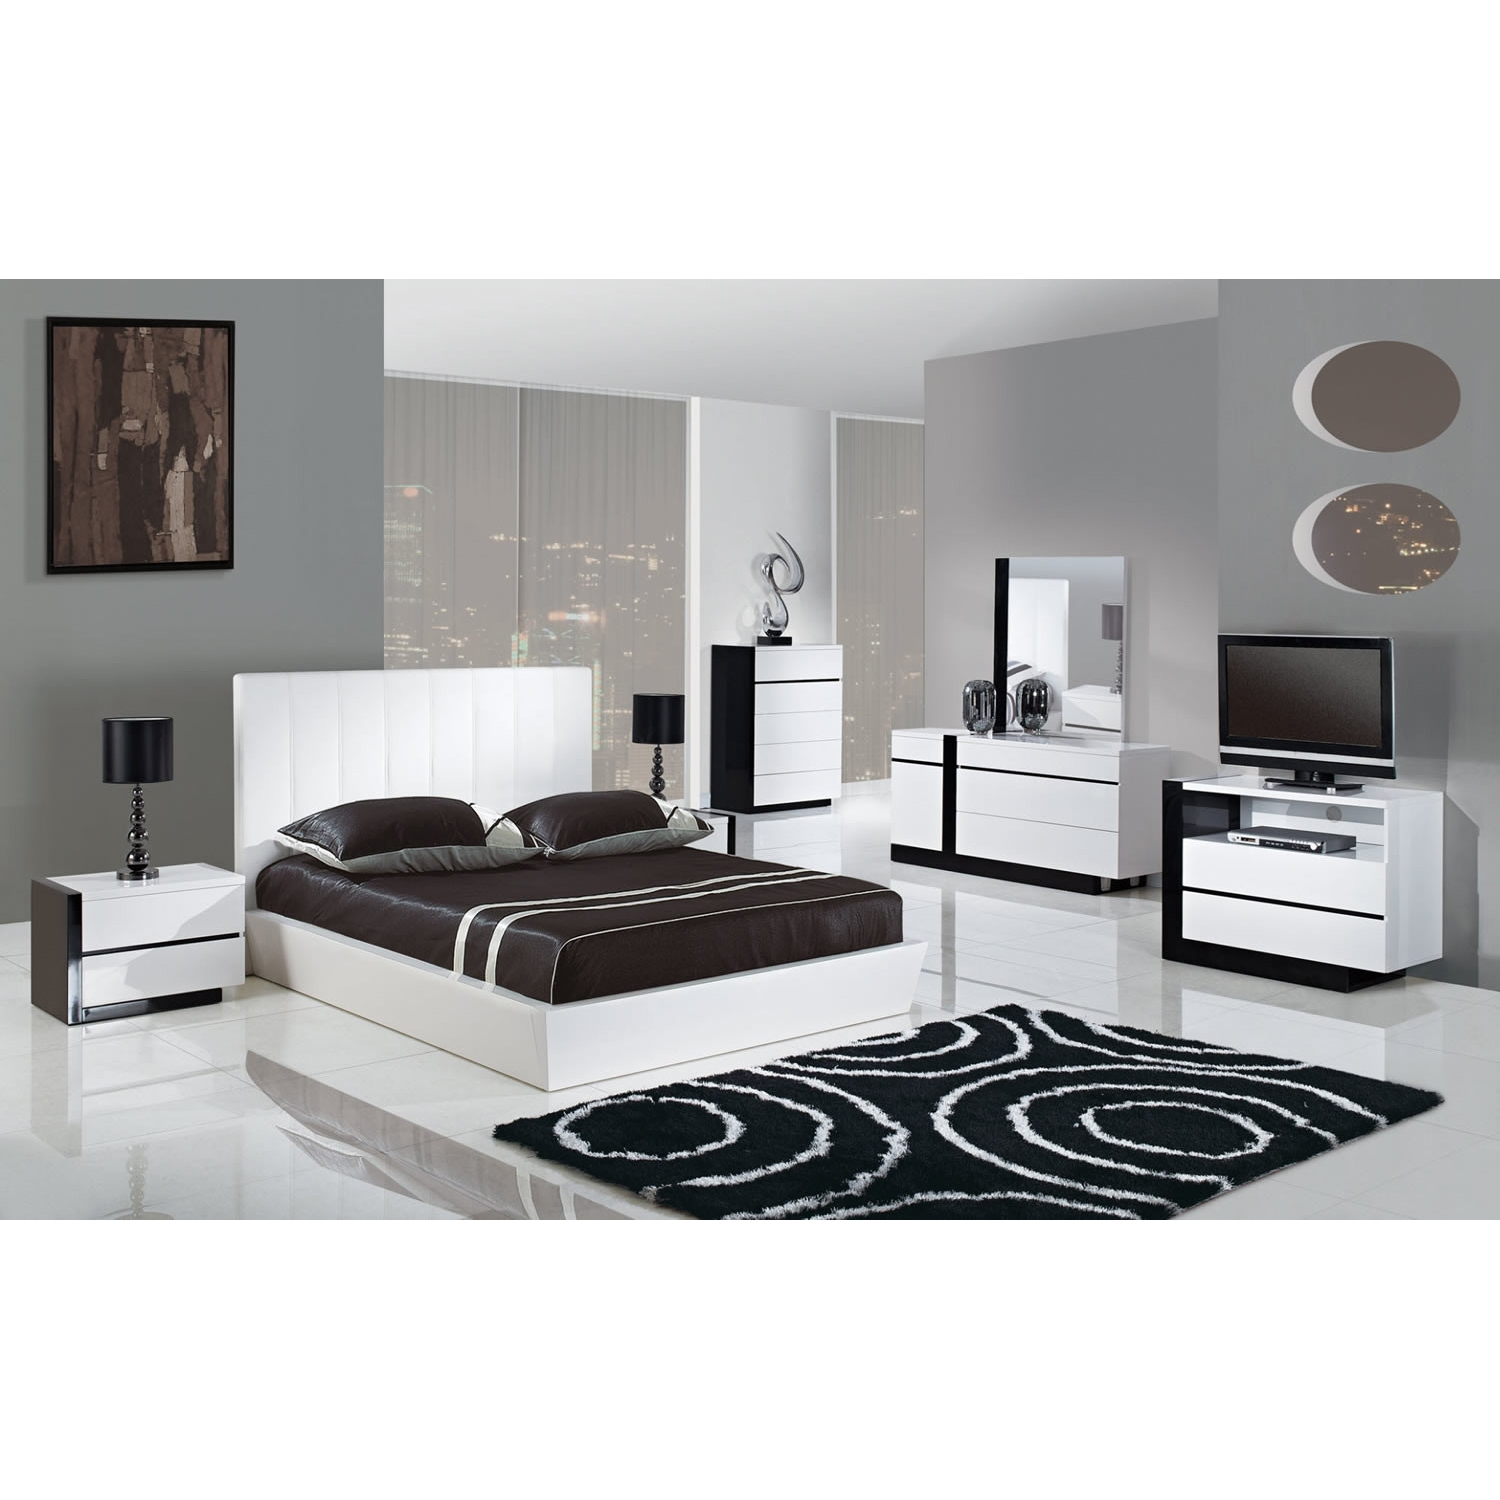 Trinity Bedroom Set in White - GLO-TRINITY-BED-SET